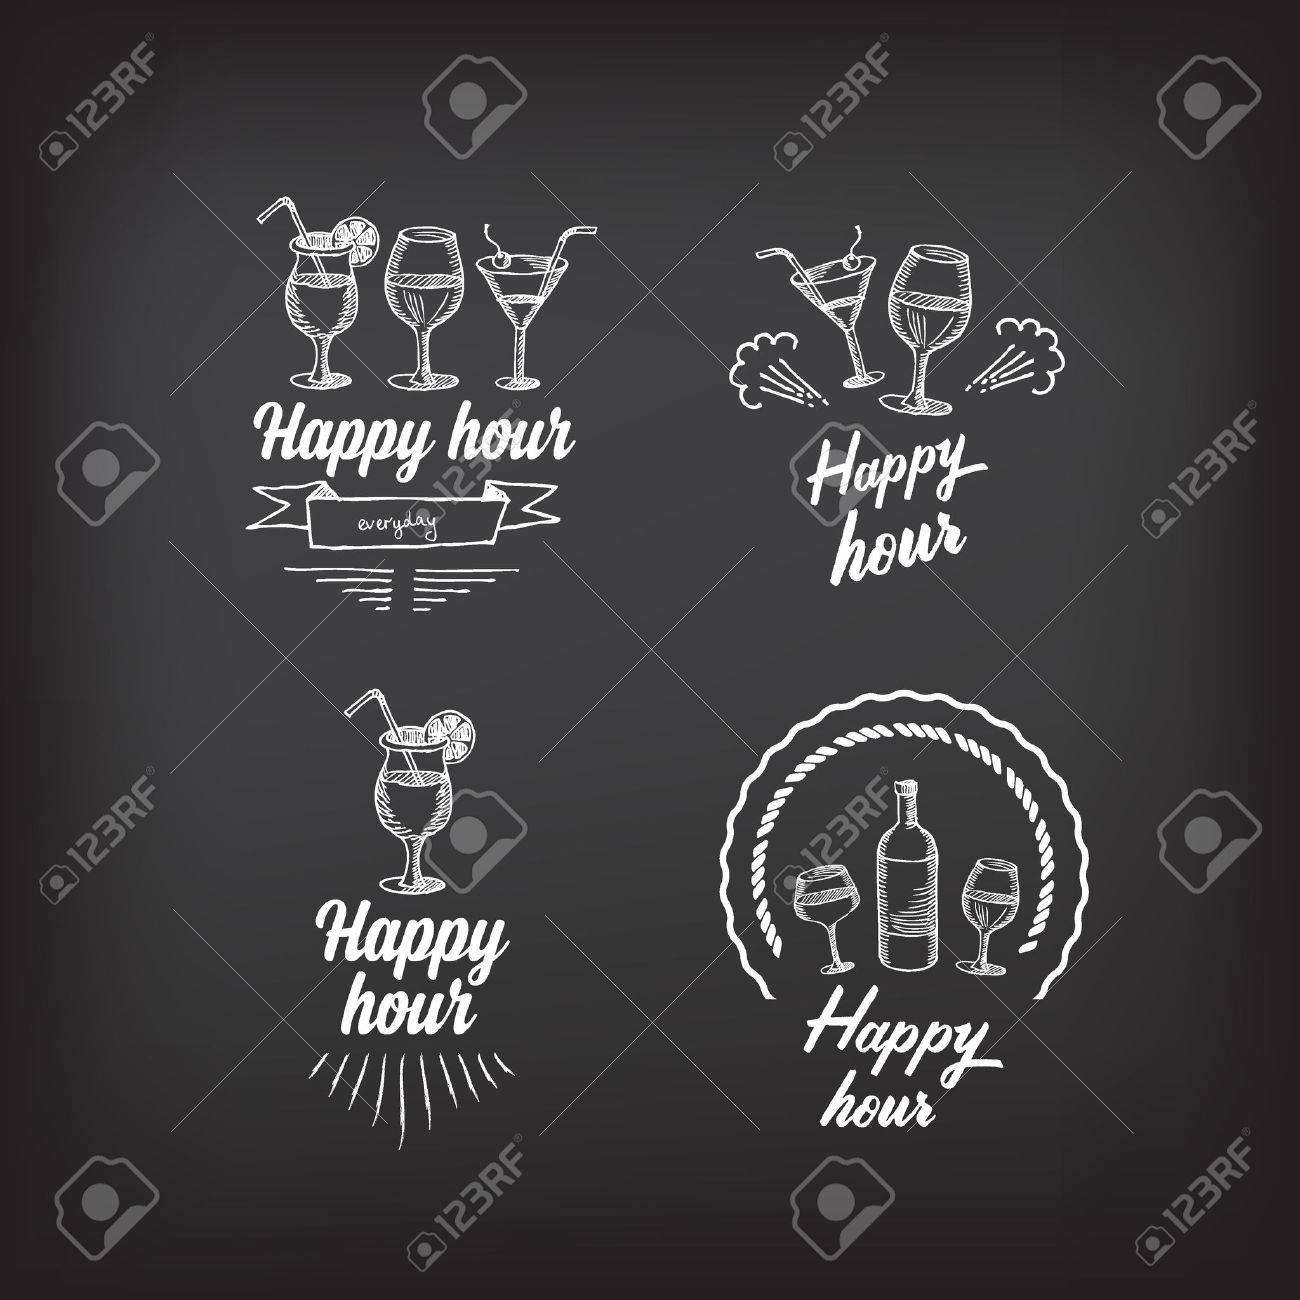 happy hour party invitation cocktail chalkboard banner royalty happy hour party invitation cocktail chalkboard banner stock vector 38014128